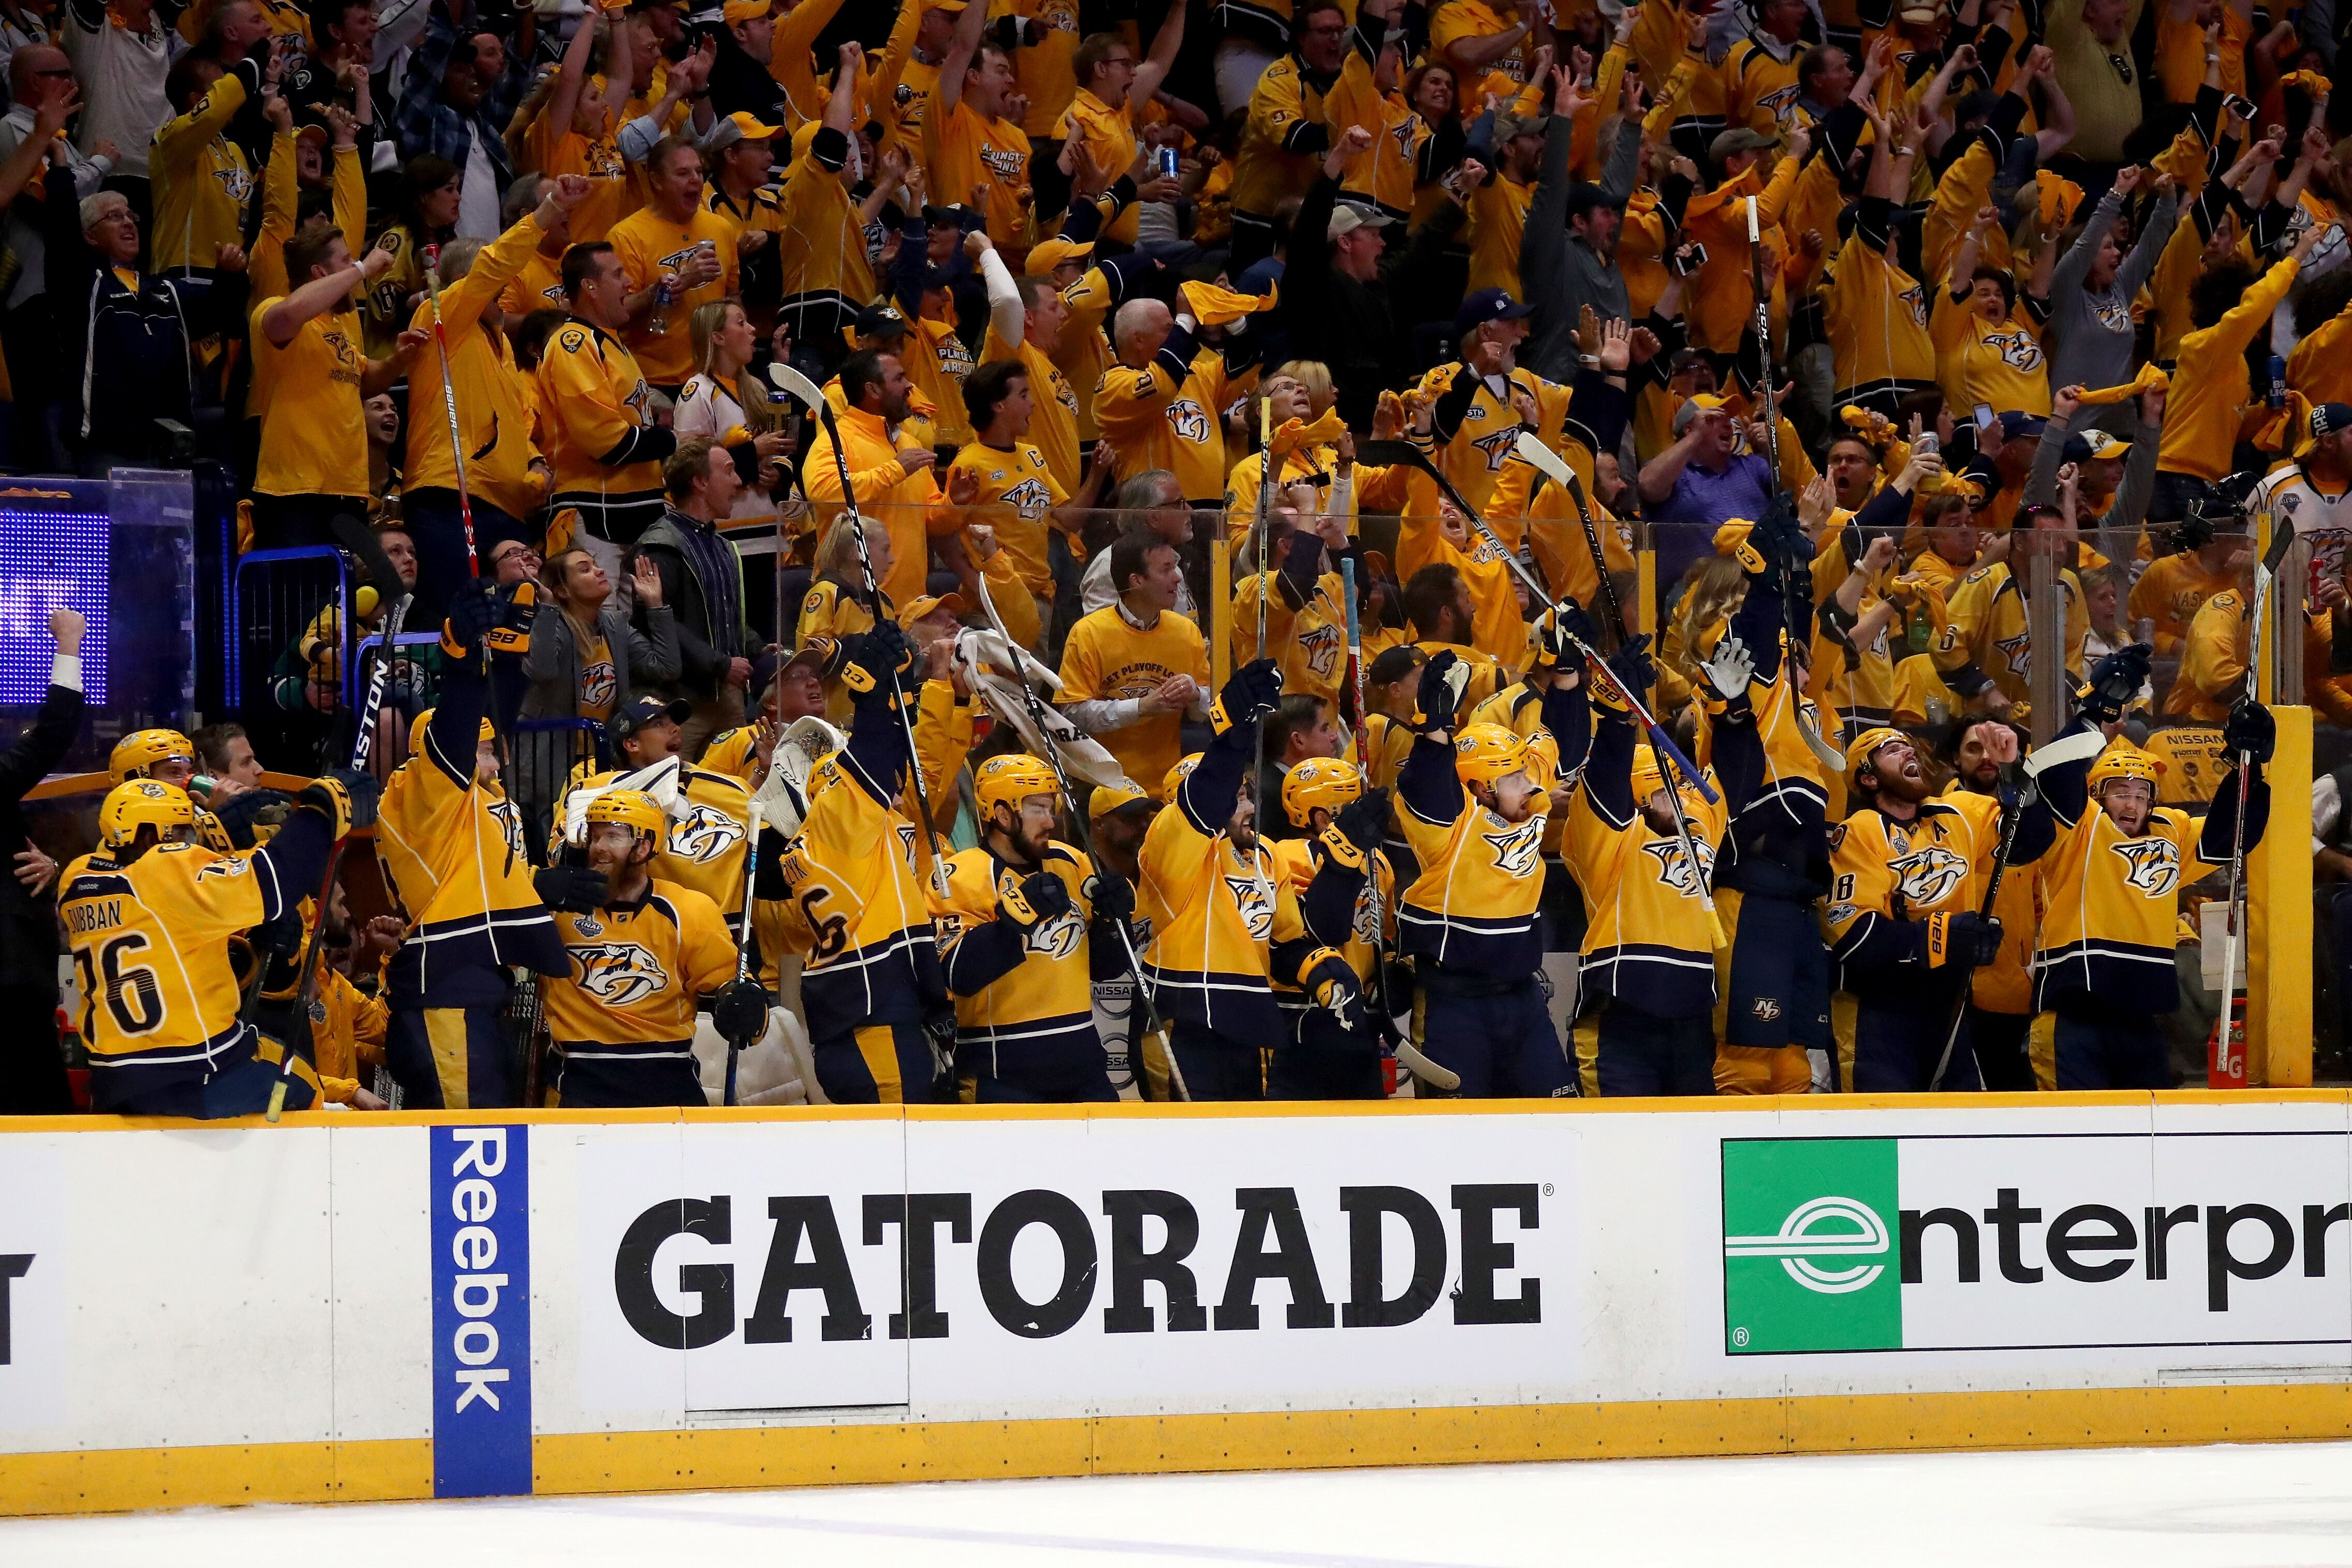 692735258-2017-nhl-stanley-cup-final-game-four.jpg